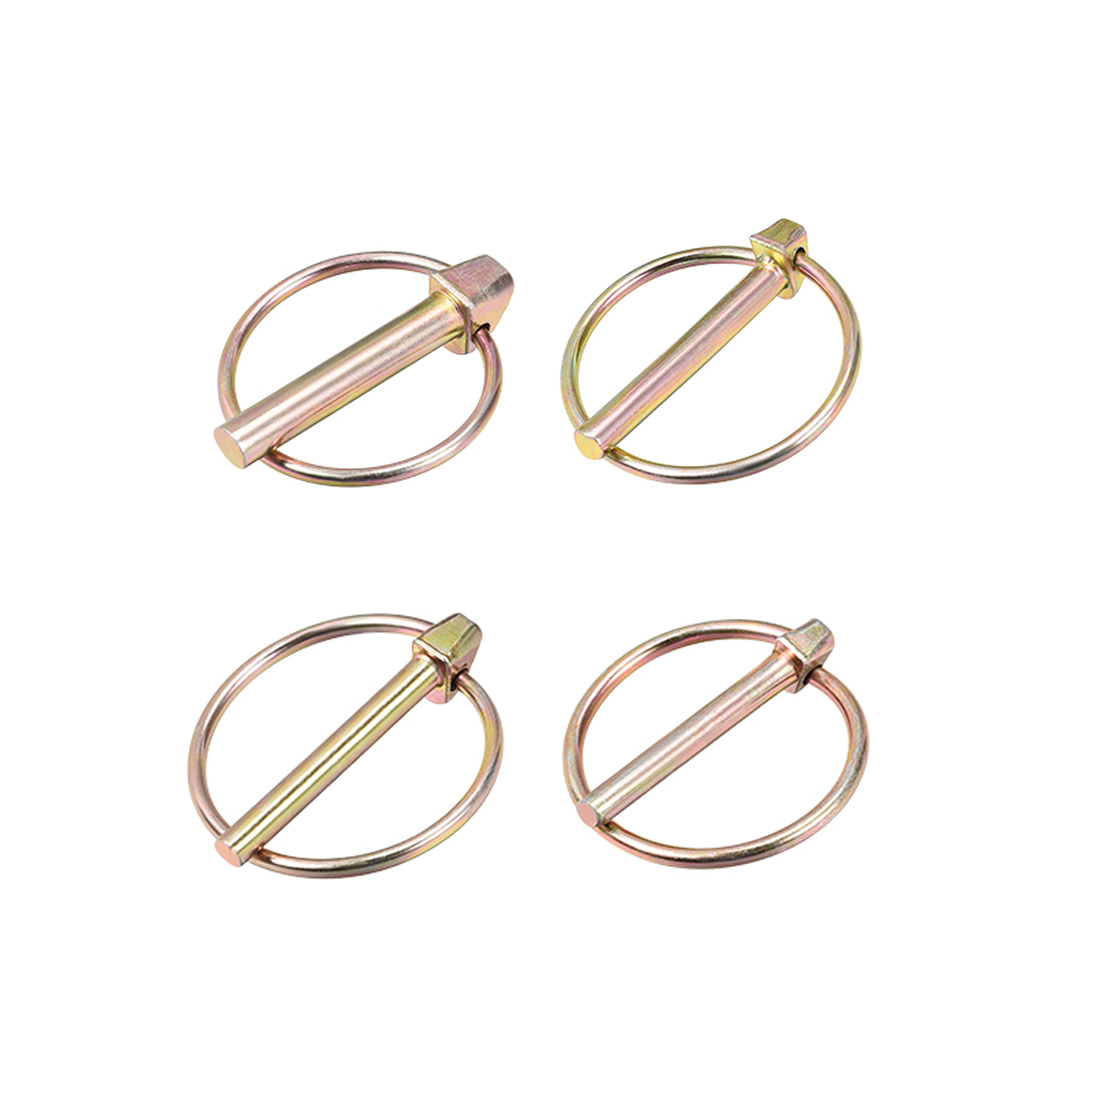 Uxcell 10Pcs Linch Pin With Ring 5x40mm 6x45mm Trailer Pins Assortment Kit For Boat Kayak Canoe Trailer Tractor Trolley Hors